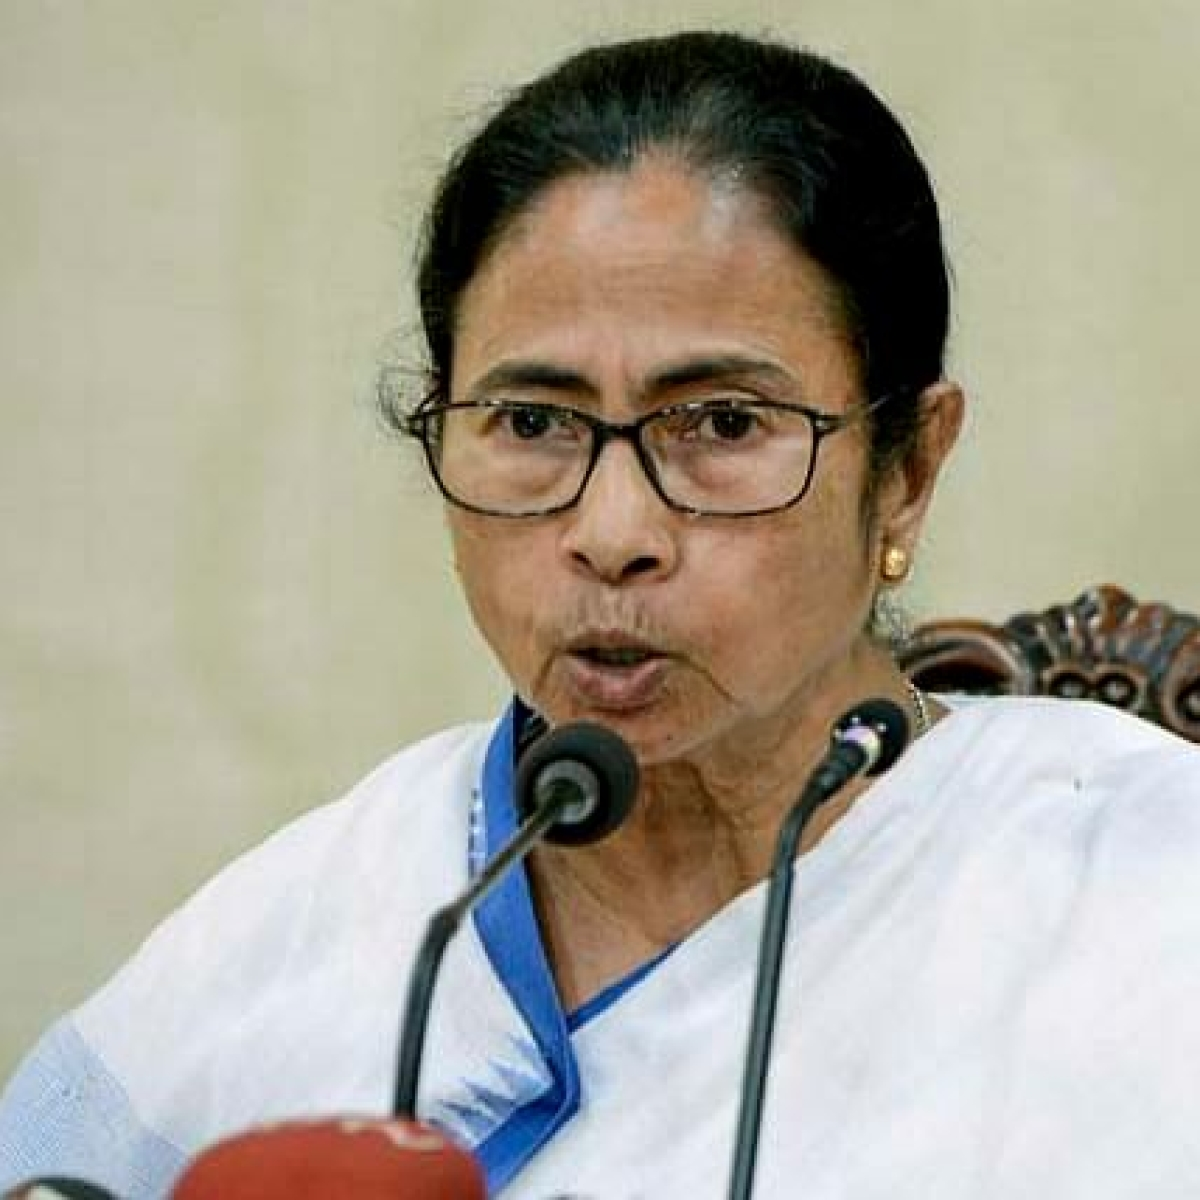 West Bengal: Mamata Banerjee writes to PM Modi to advise concerned ministry to release due fund of eligible farmers under PM-Kisan scheme